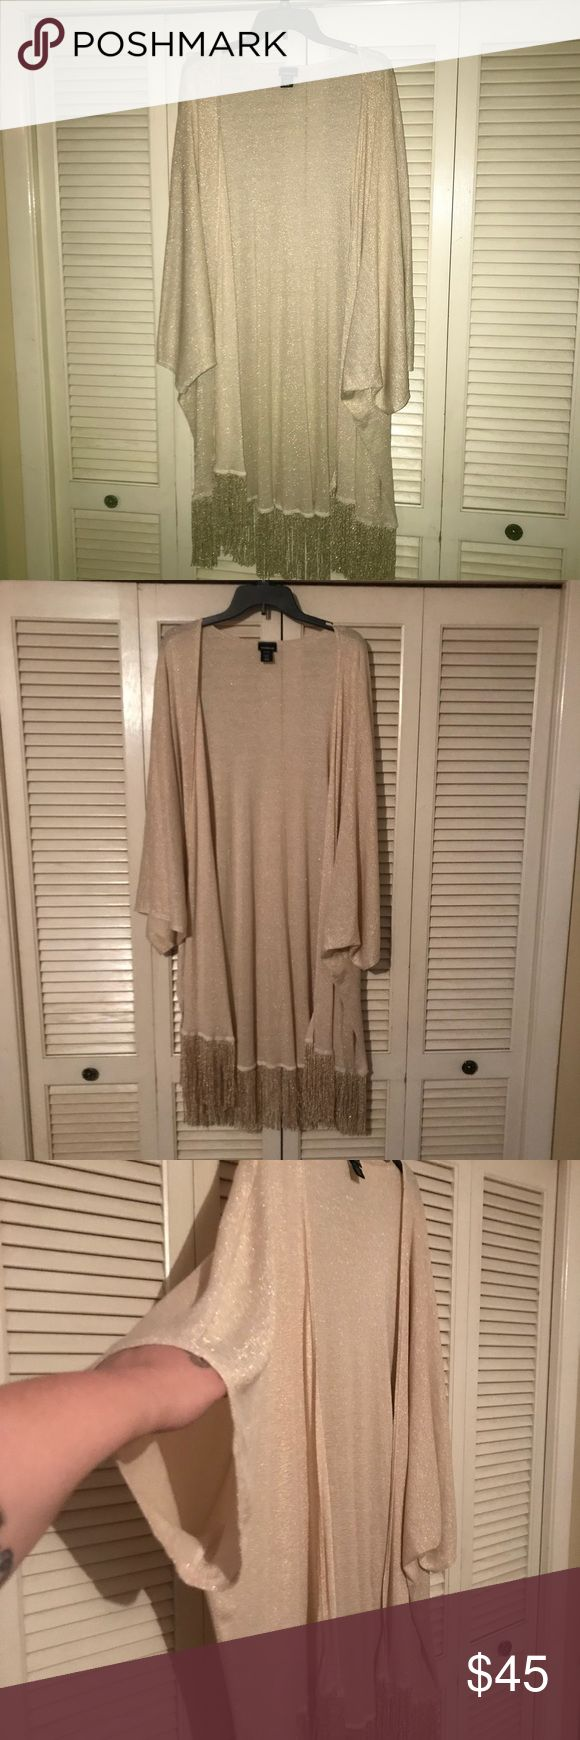 Elegant Torrid Kimono Cardigan 4/5 4x 5x One of my favorite Torrid pieces. Circa 2014 and it's rare to see it on sale. Perfect for the holidays with its slight sparkle and classy champagne color. The fringe at bottom also has shine. It's in new condition. Wore twice. Kimono sleeves hit well past elbow. I wore over a torrid maxi with big hoop earrings and booties. 37 inches long without fringe and 43 inches with. torrid Tops